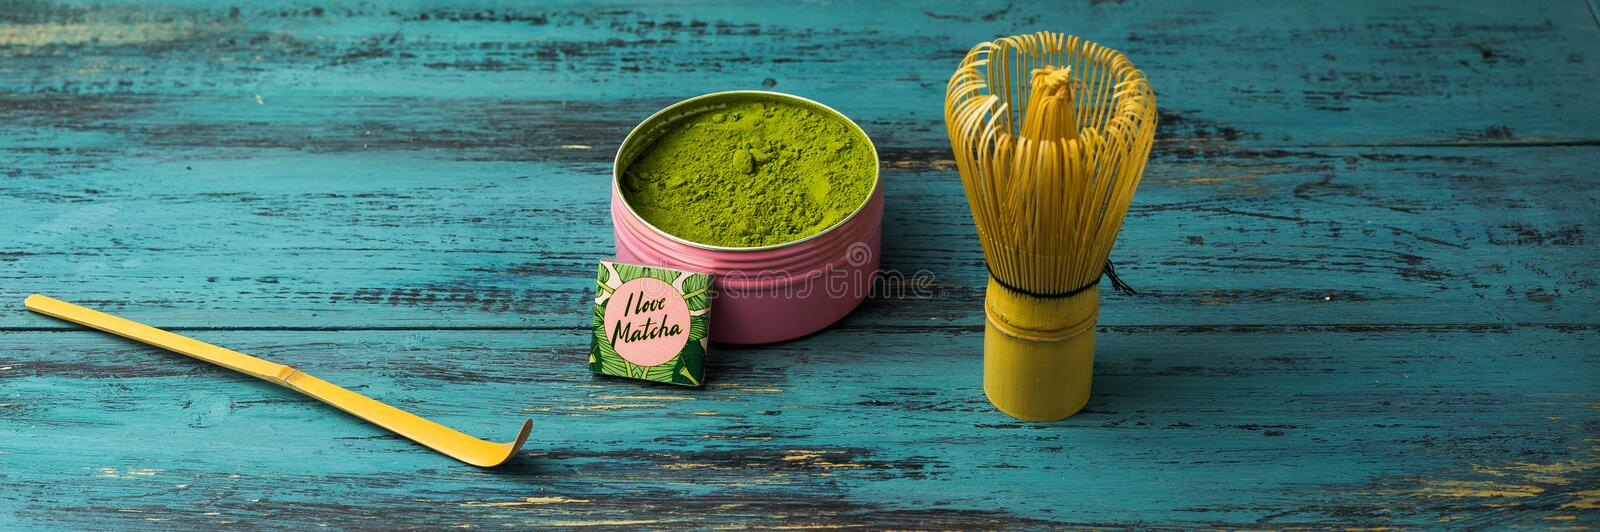 Green matcha tea powder and tea accessories on blue wooden background. Japanese tea ceremony concept stock photo